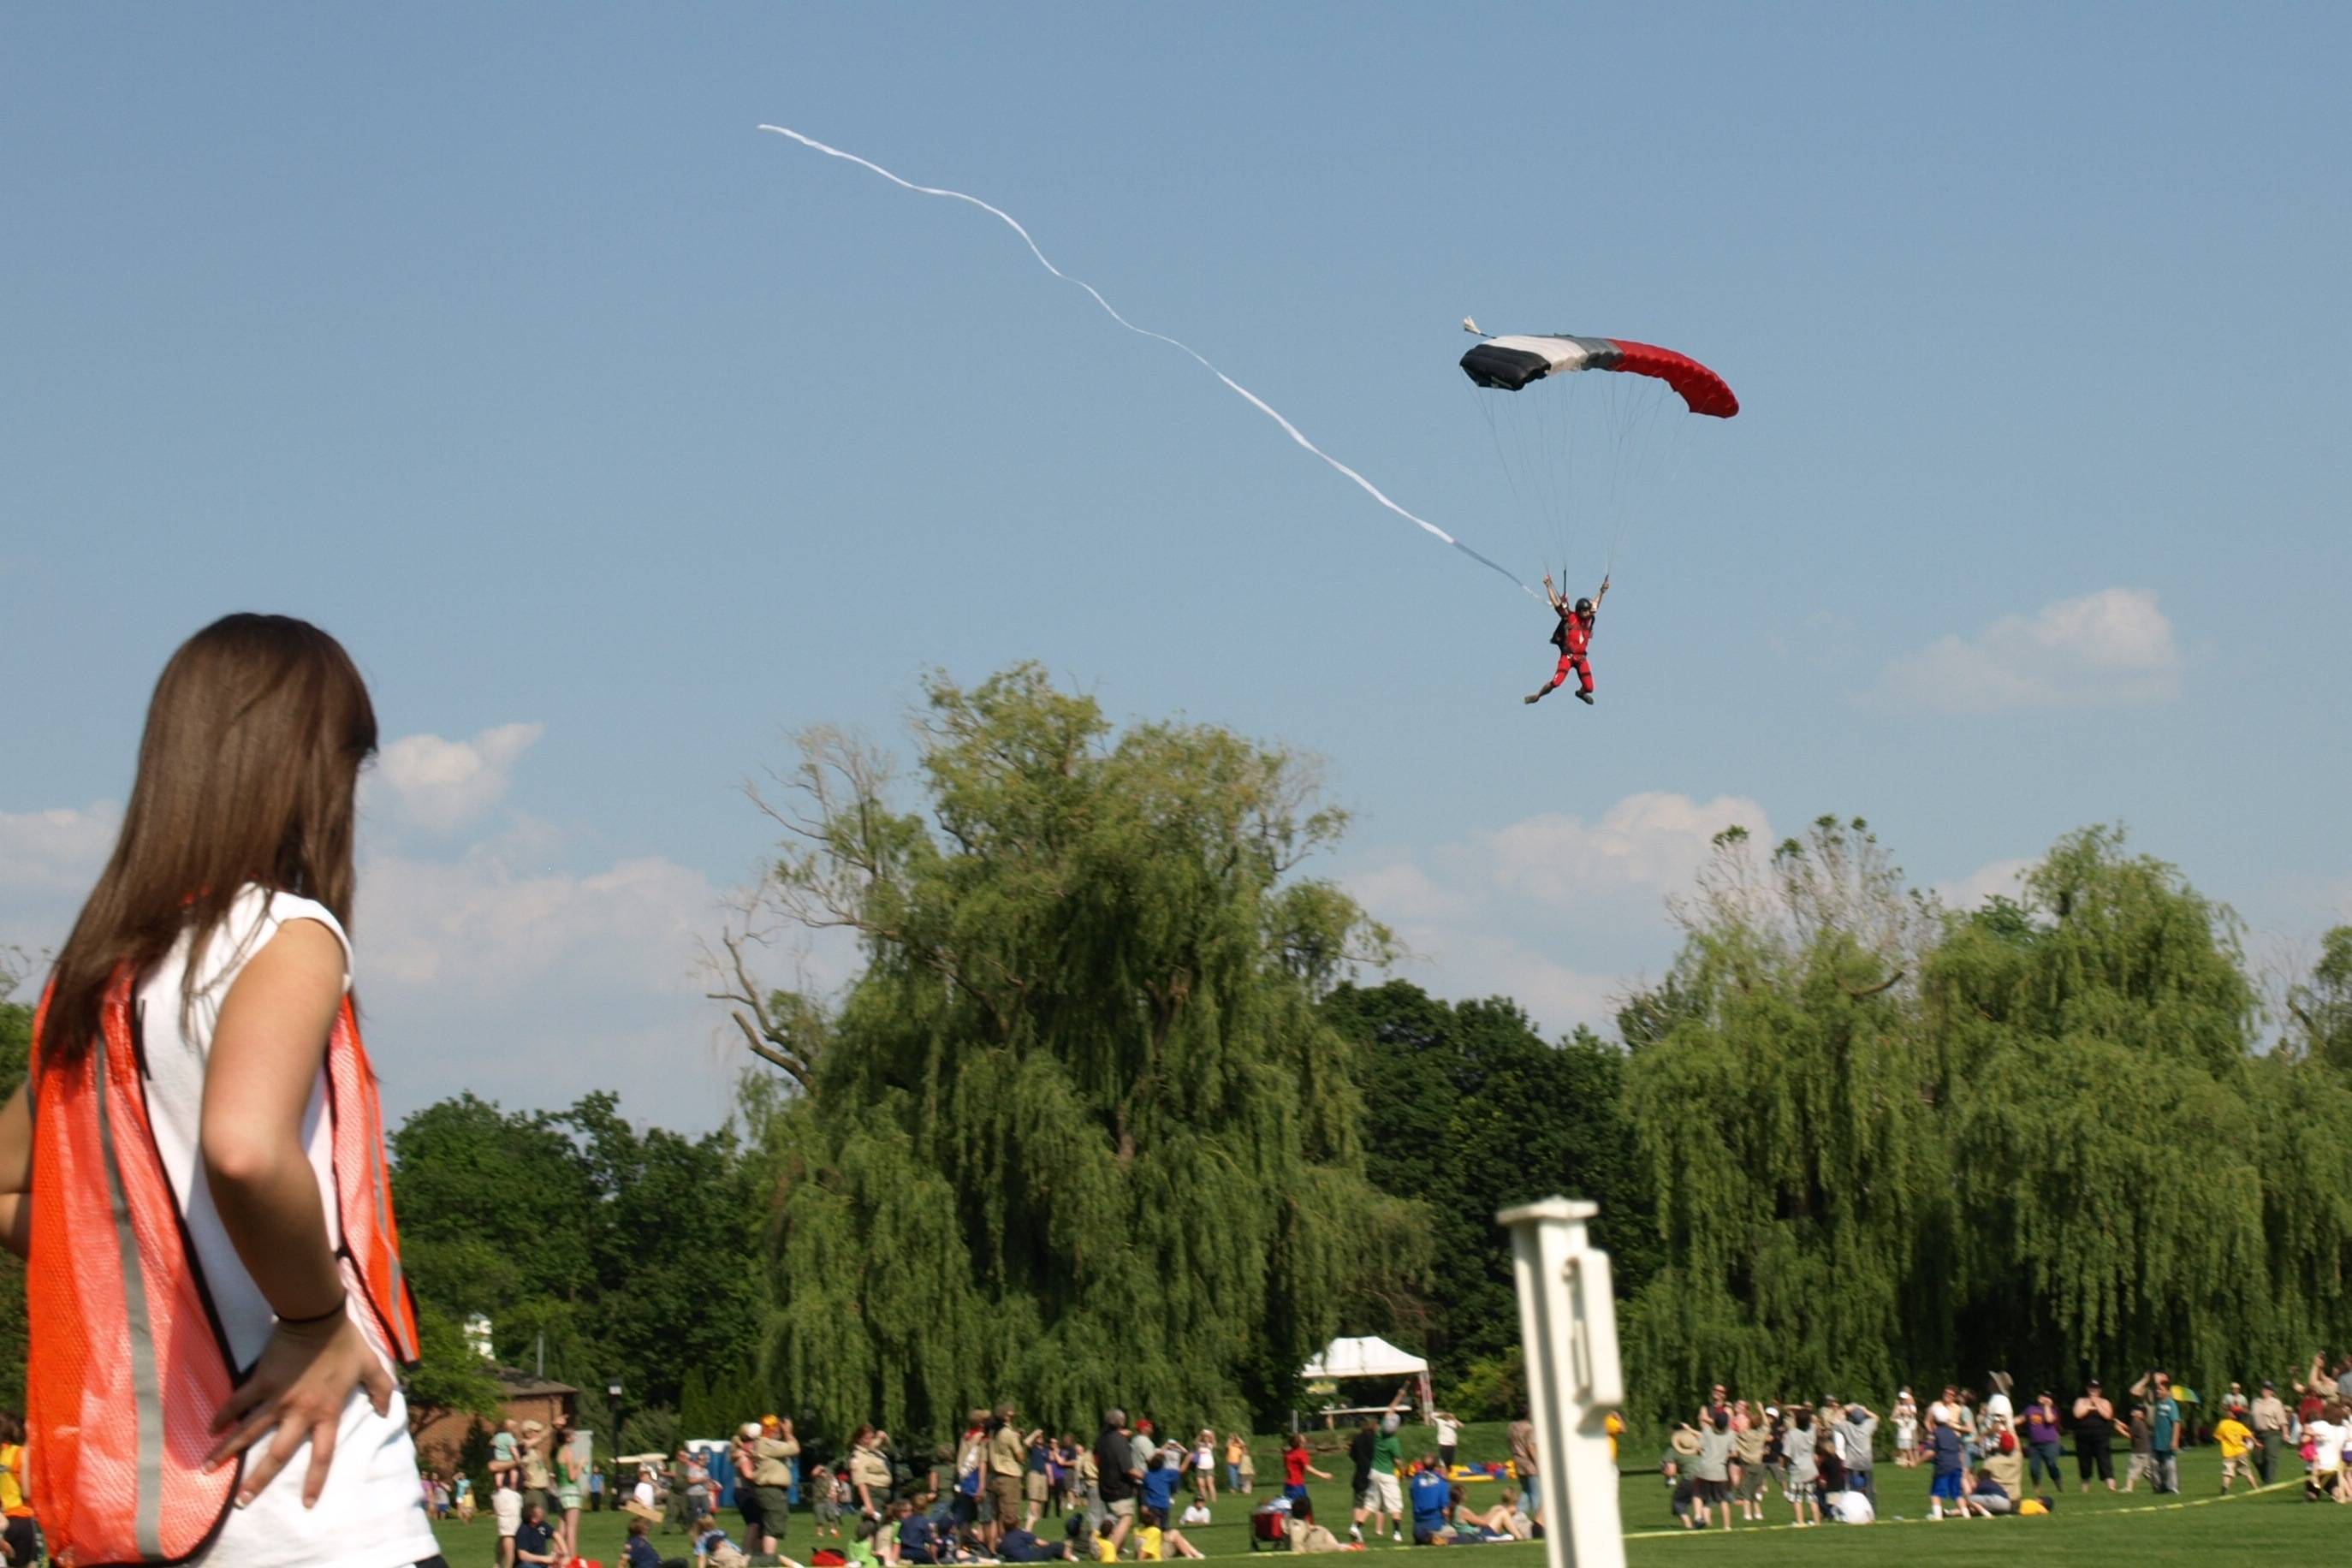 Chicagoland Skydiver Center parachutes on to main parade filed at Scout-O-Rama held at Cantigny Park.